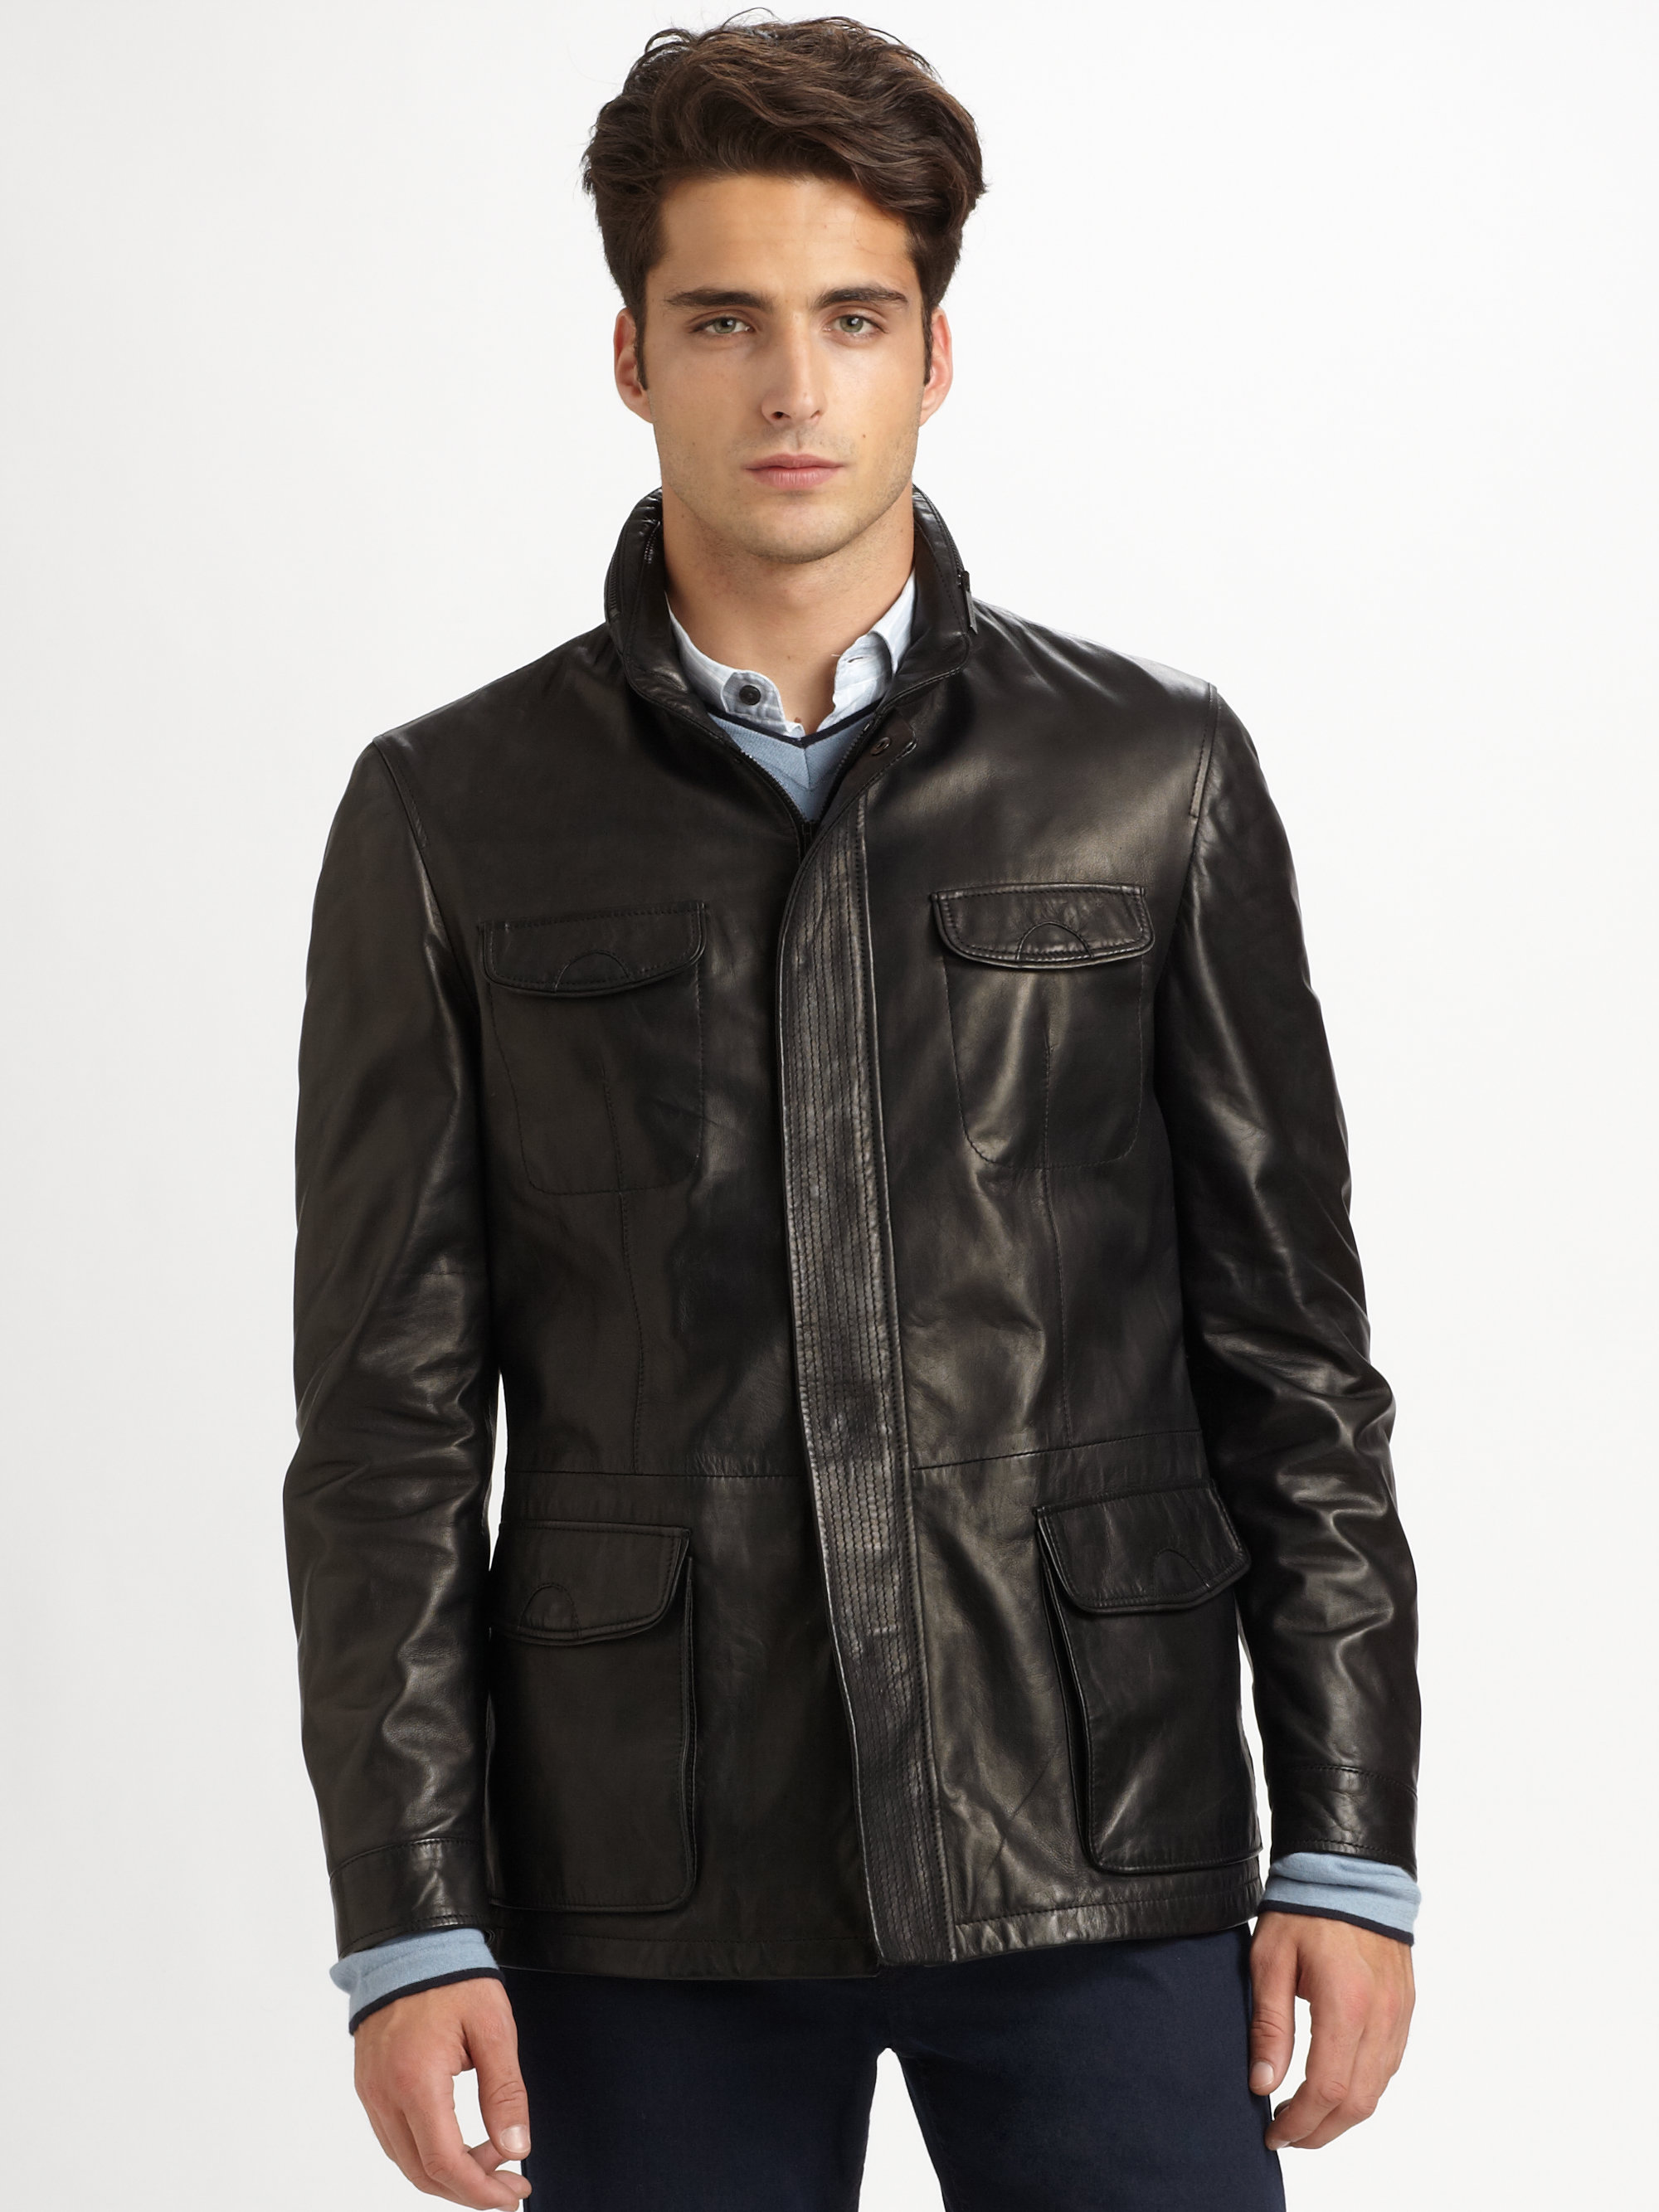 While these jackets were originally made to protect riders from the whipping wind, the mystique and sense of rebellion that have developed in association with motorcycle jackets make this type of Men's Leather Outerwear a popular choice, even for men who have no .